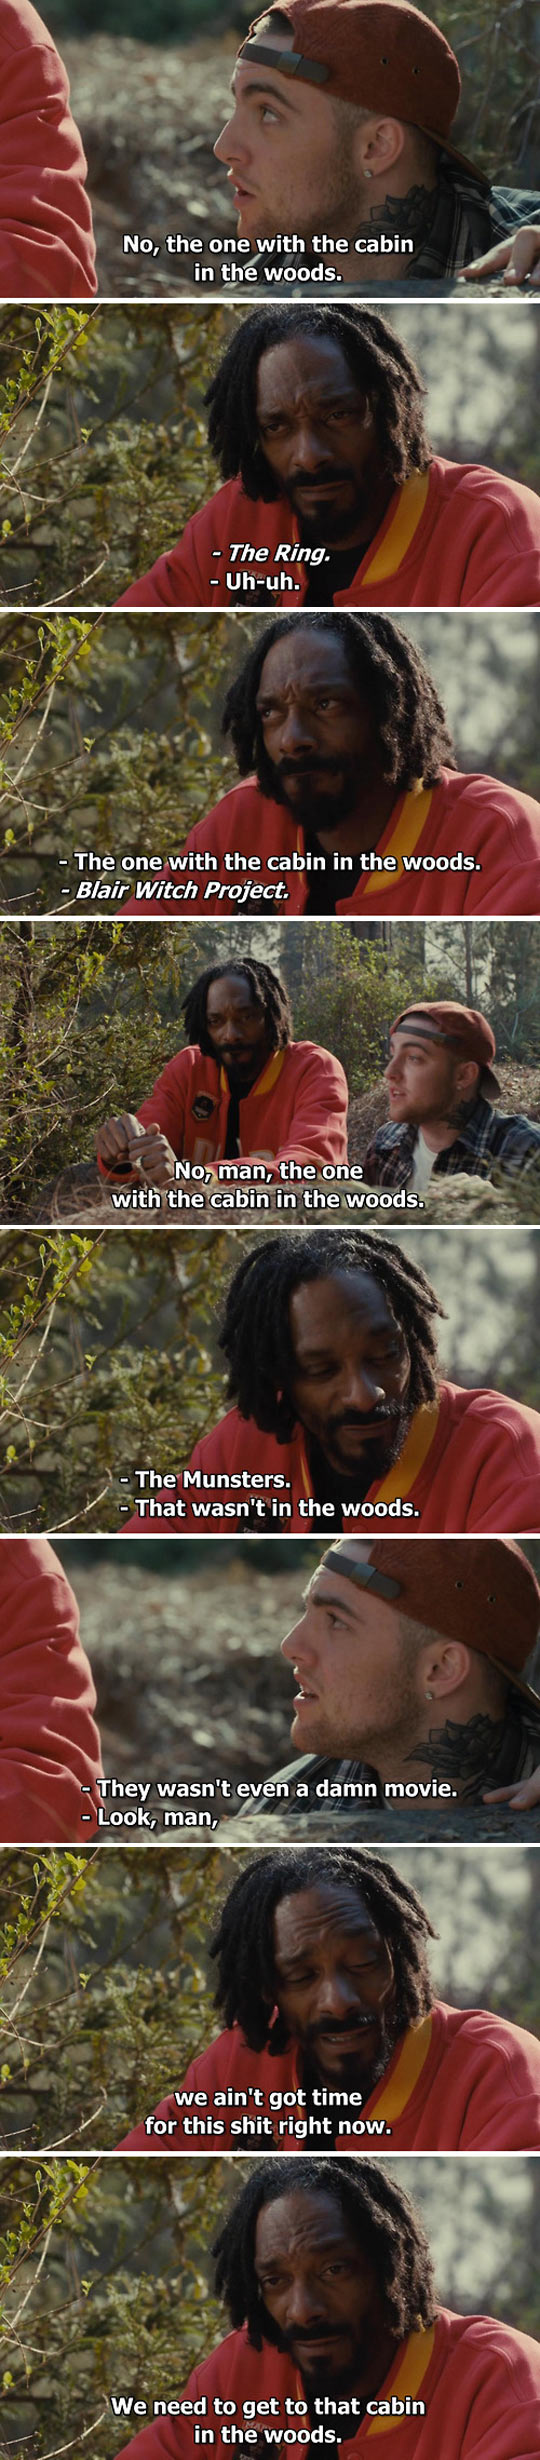 funny-cabin-woods-movie-Snoop-Dogg-horror